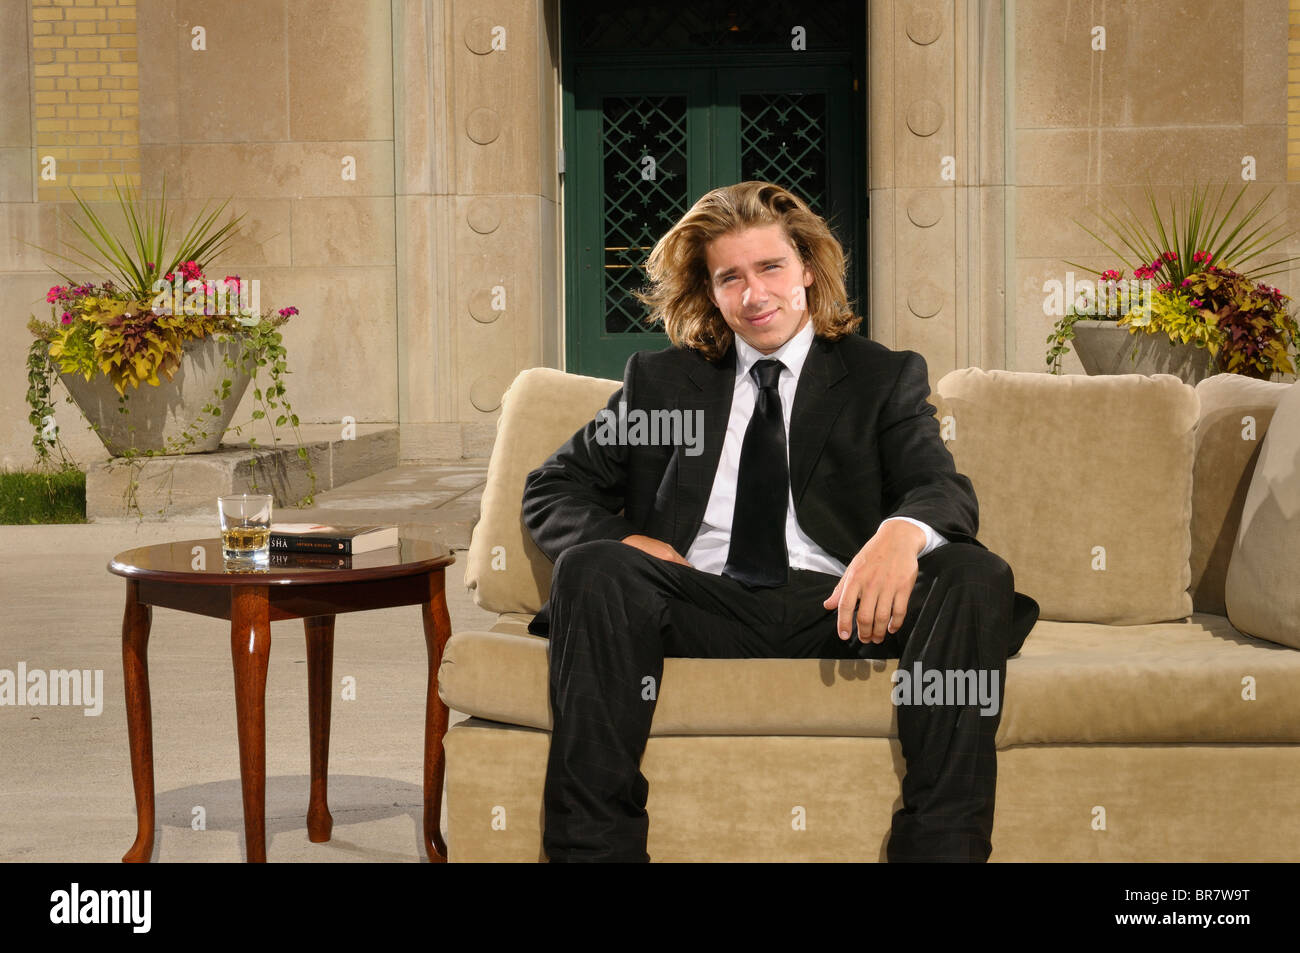 Wealthy young man with long blond hair in suit sitting on a couch on an outdoor terrace at a mansion - Stock Image